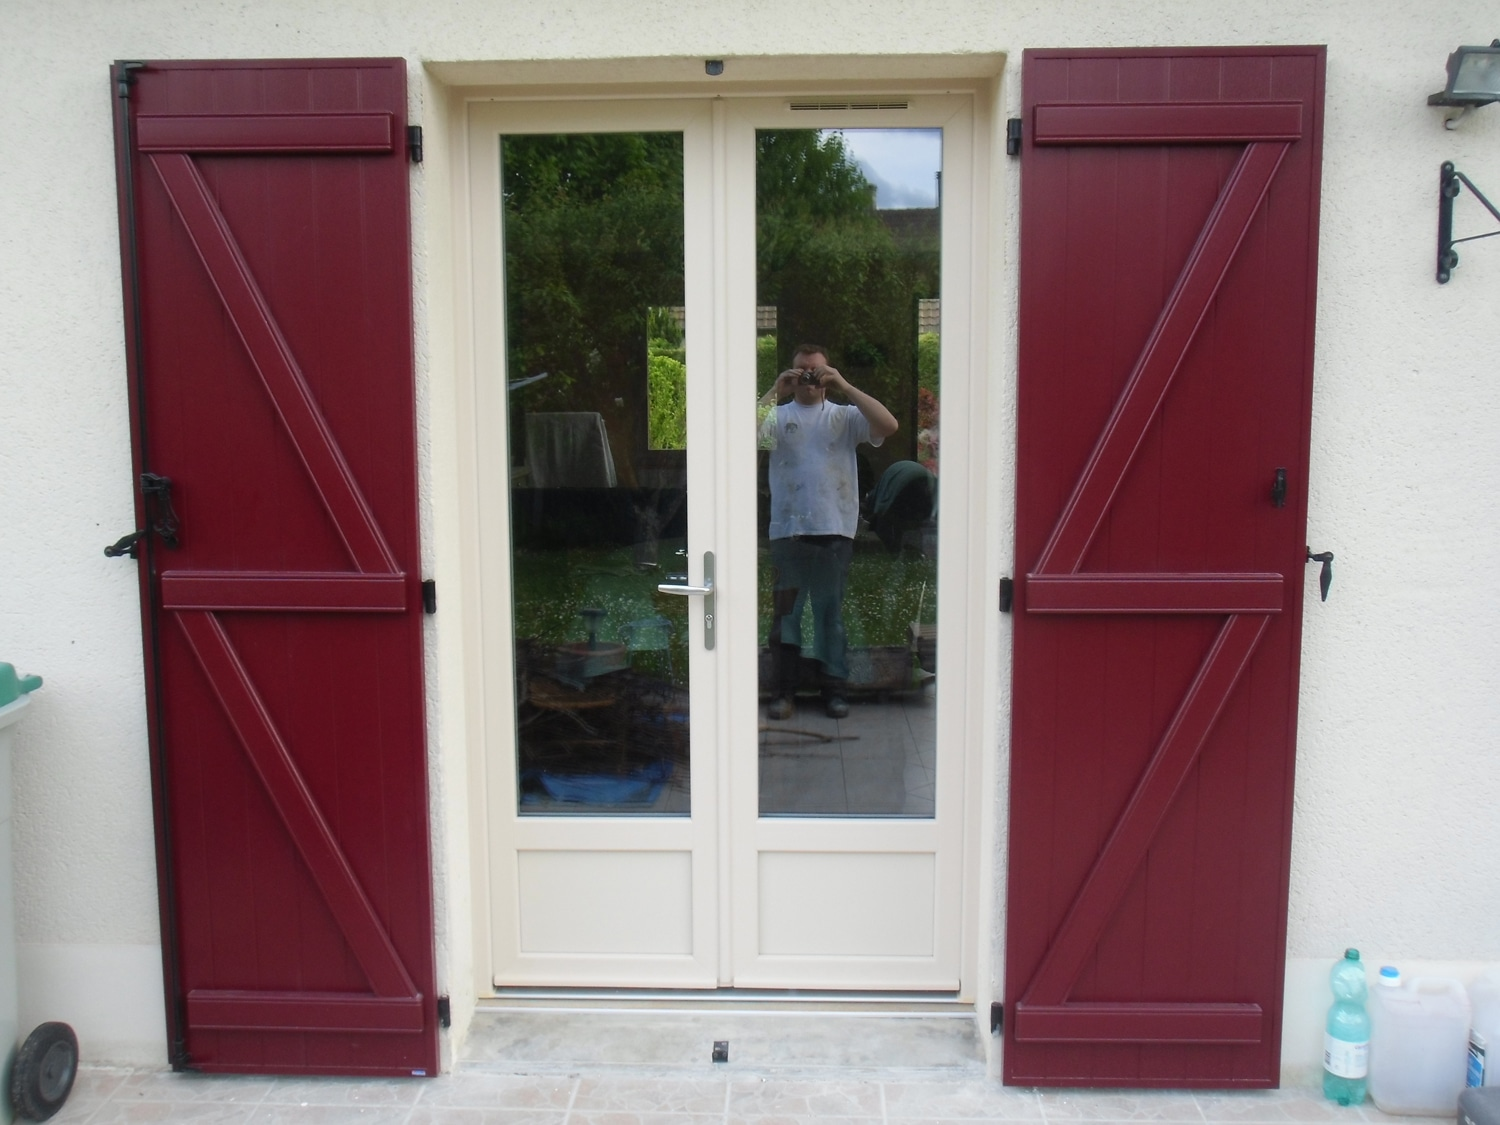 volets-rouges-menuiserie-chevallier-freres-orleans-3